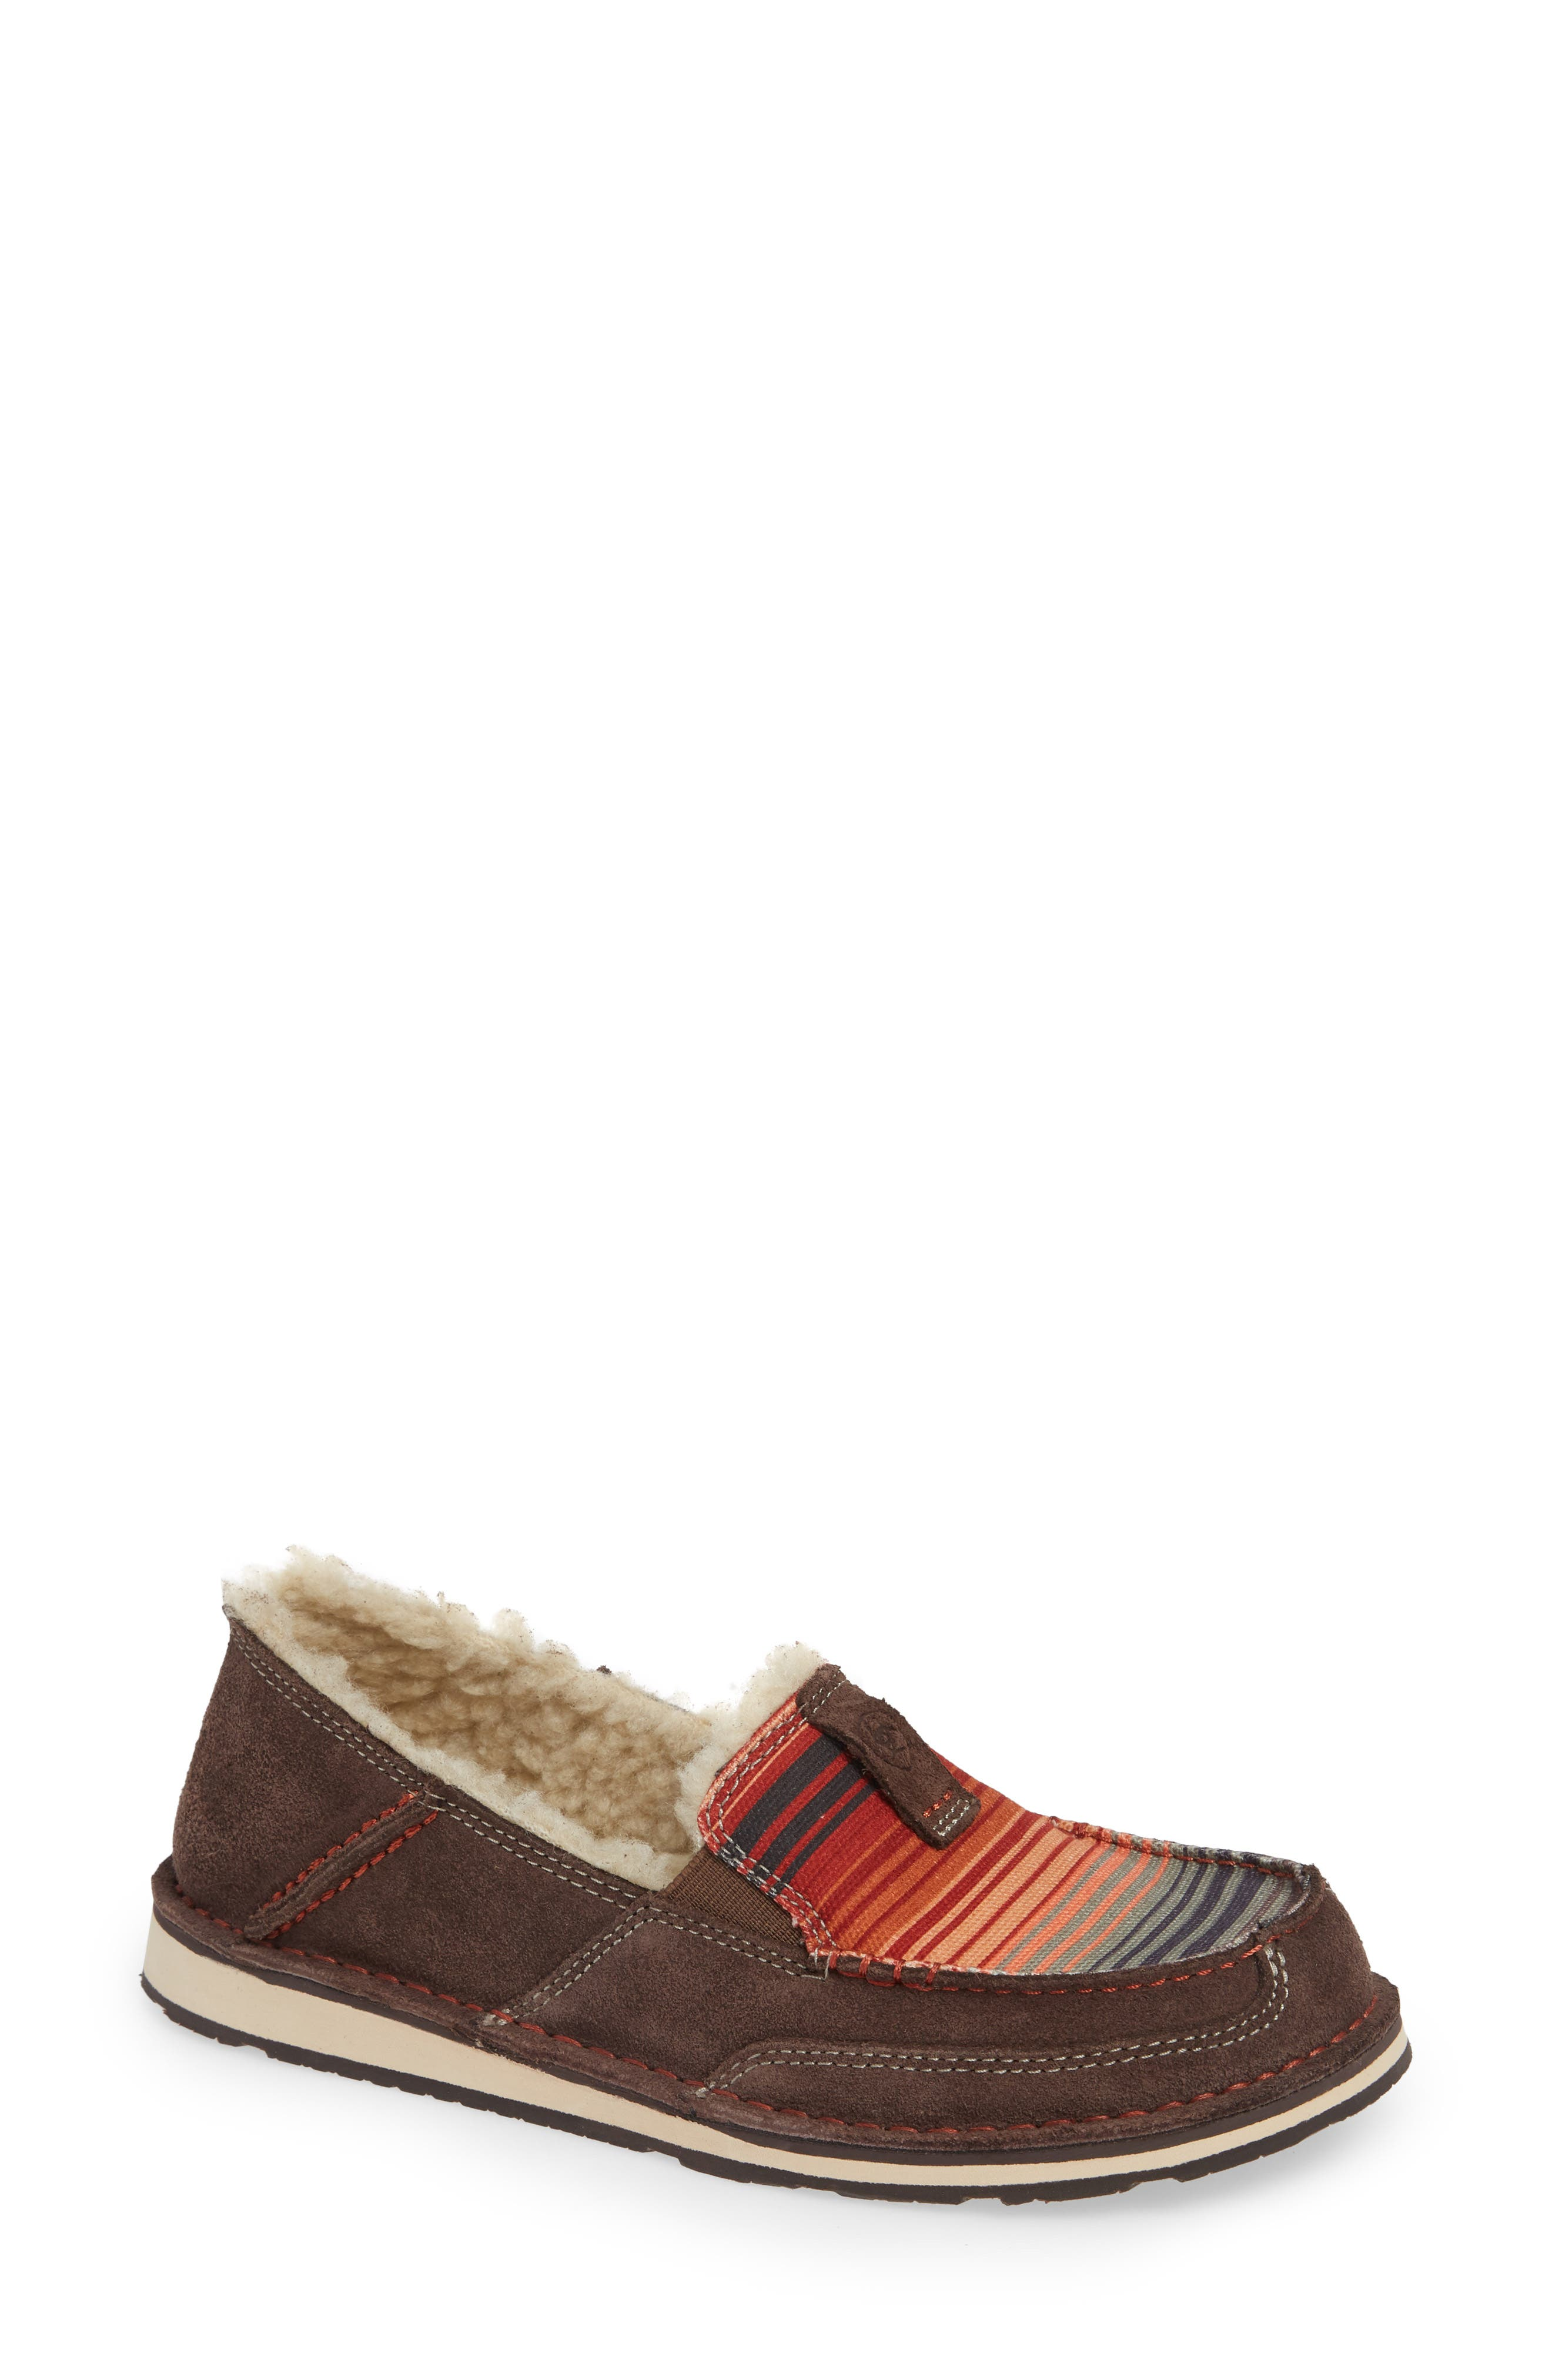 ARIAT Cruiser Slip-On Loafer, Main, color, SOUTHWESTERN FABRIC